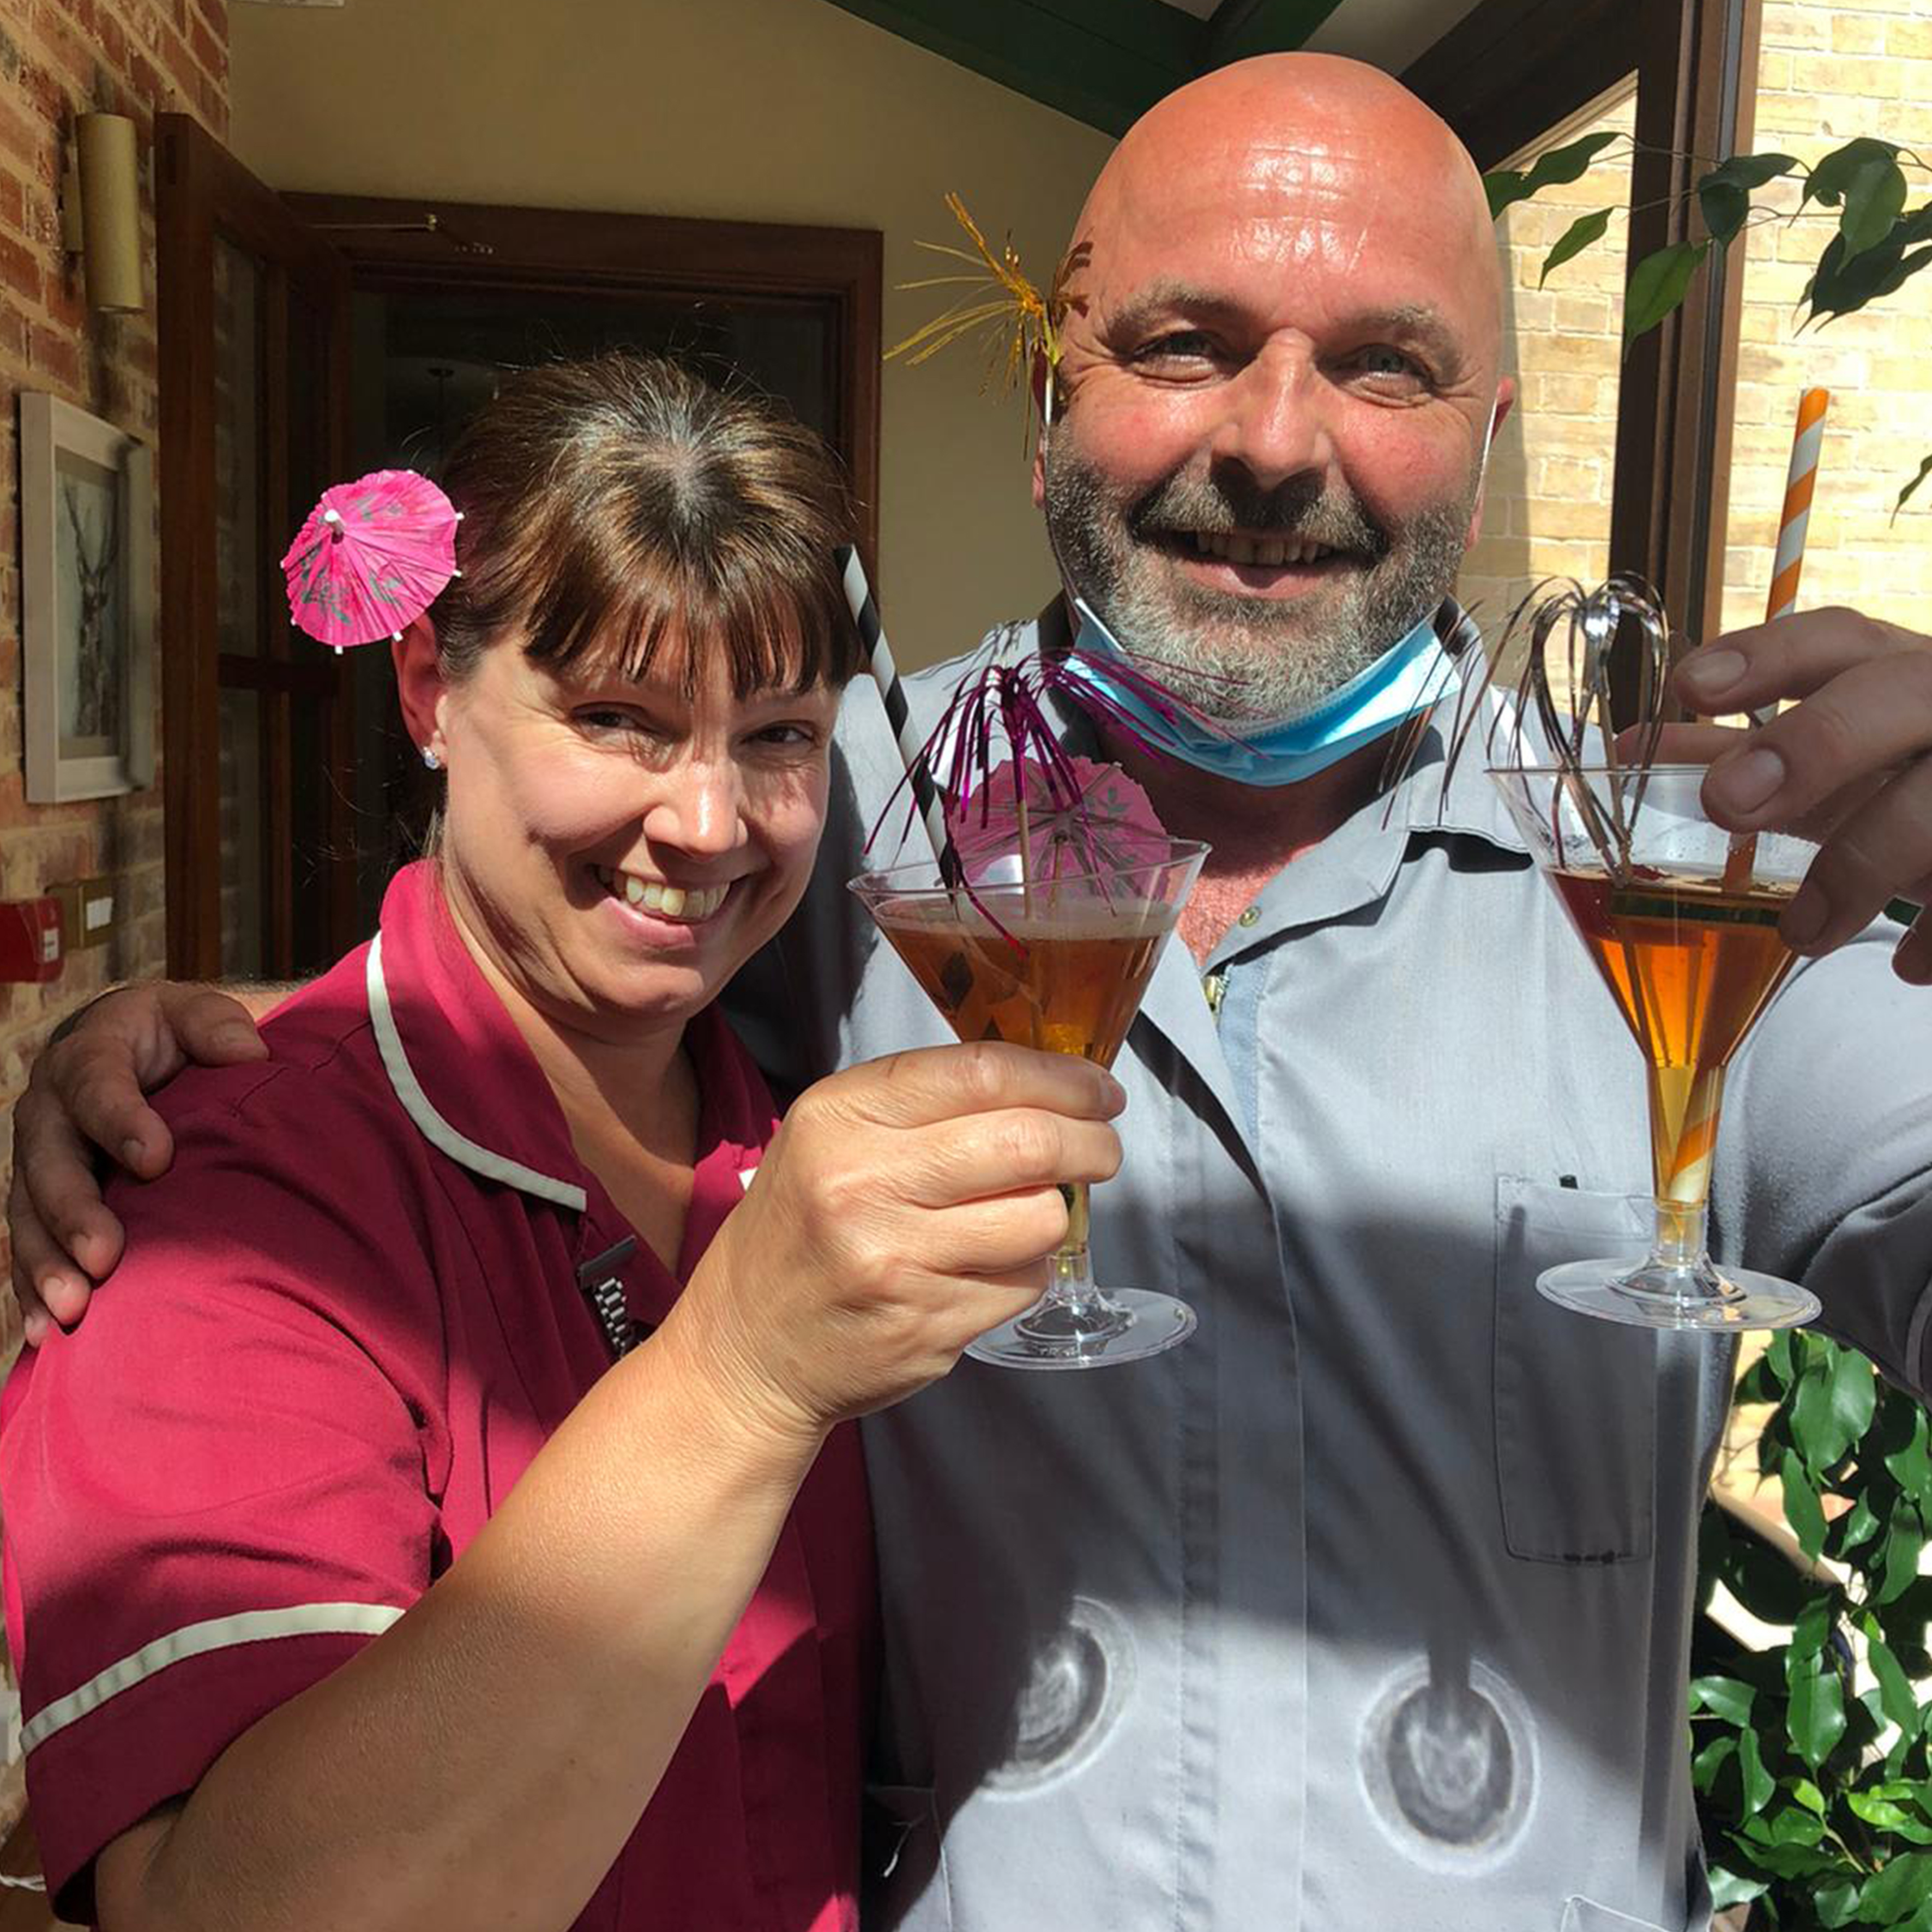 Staff and residents enjoy their Pimms